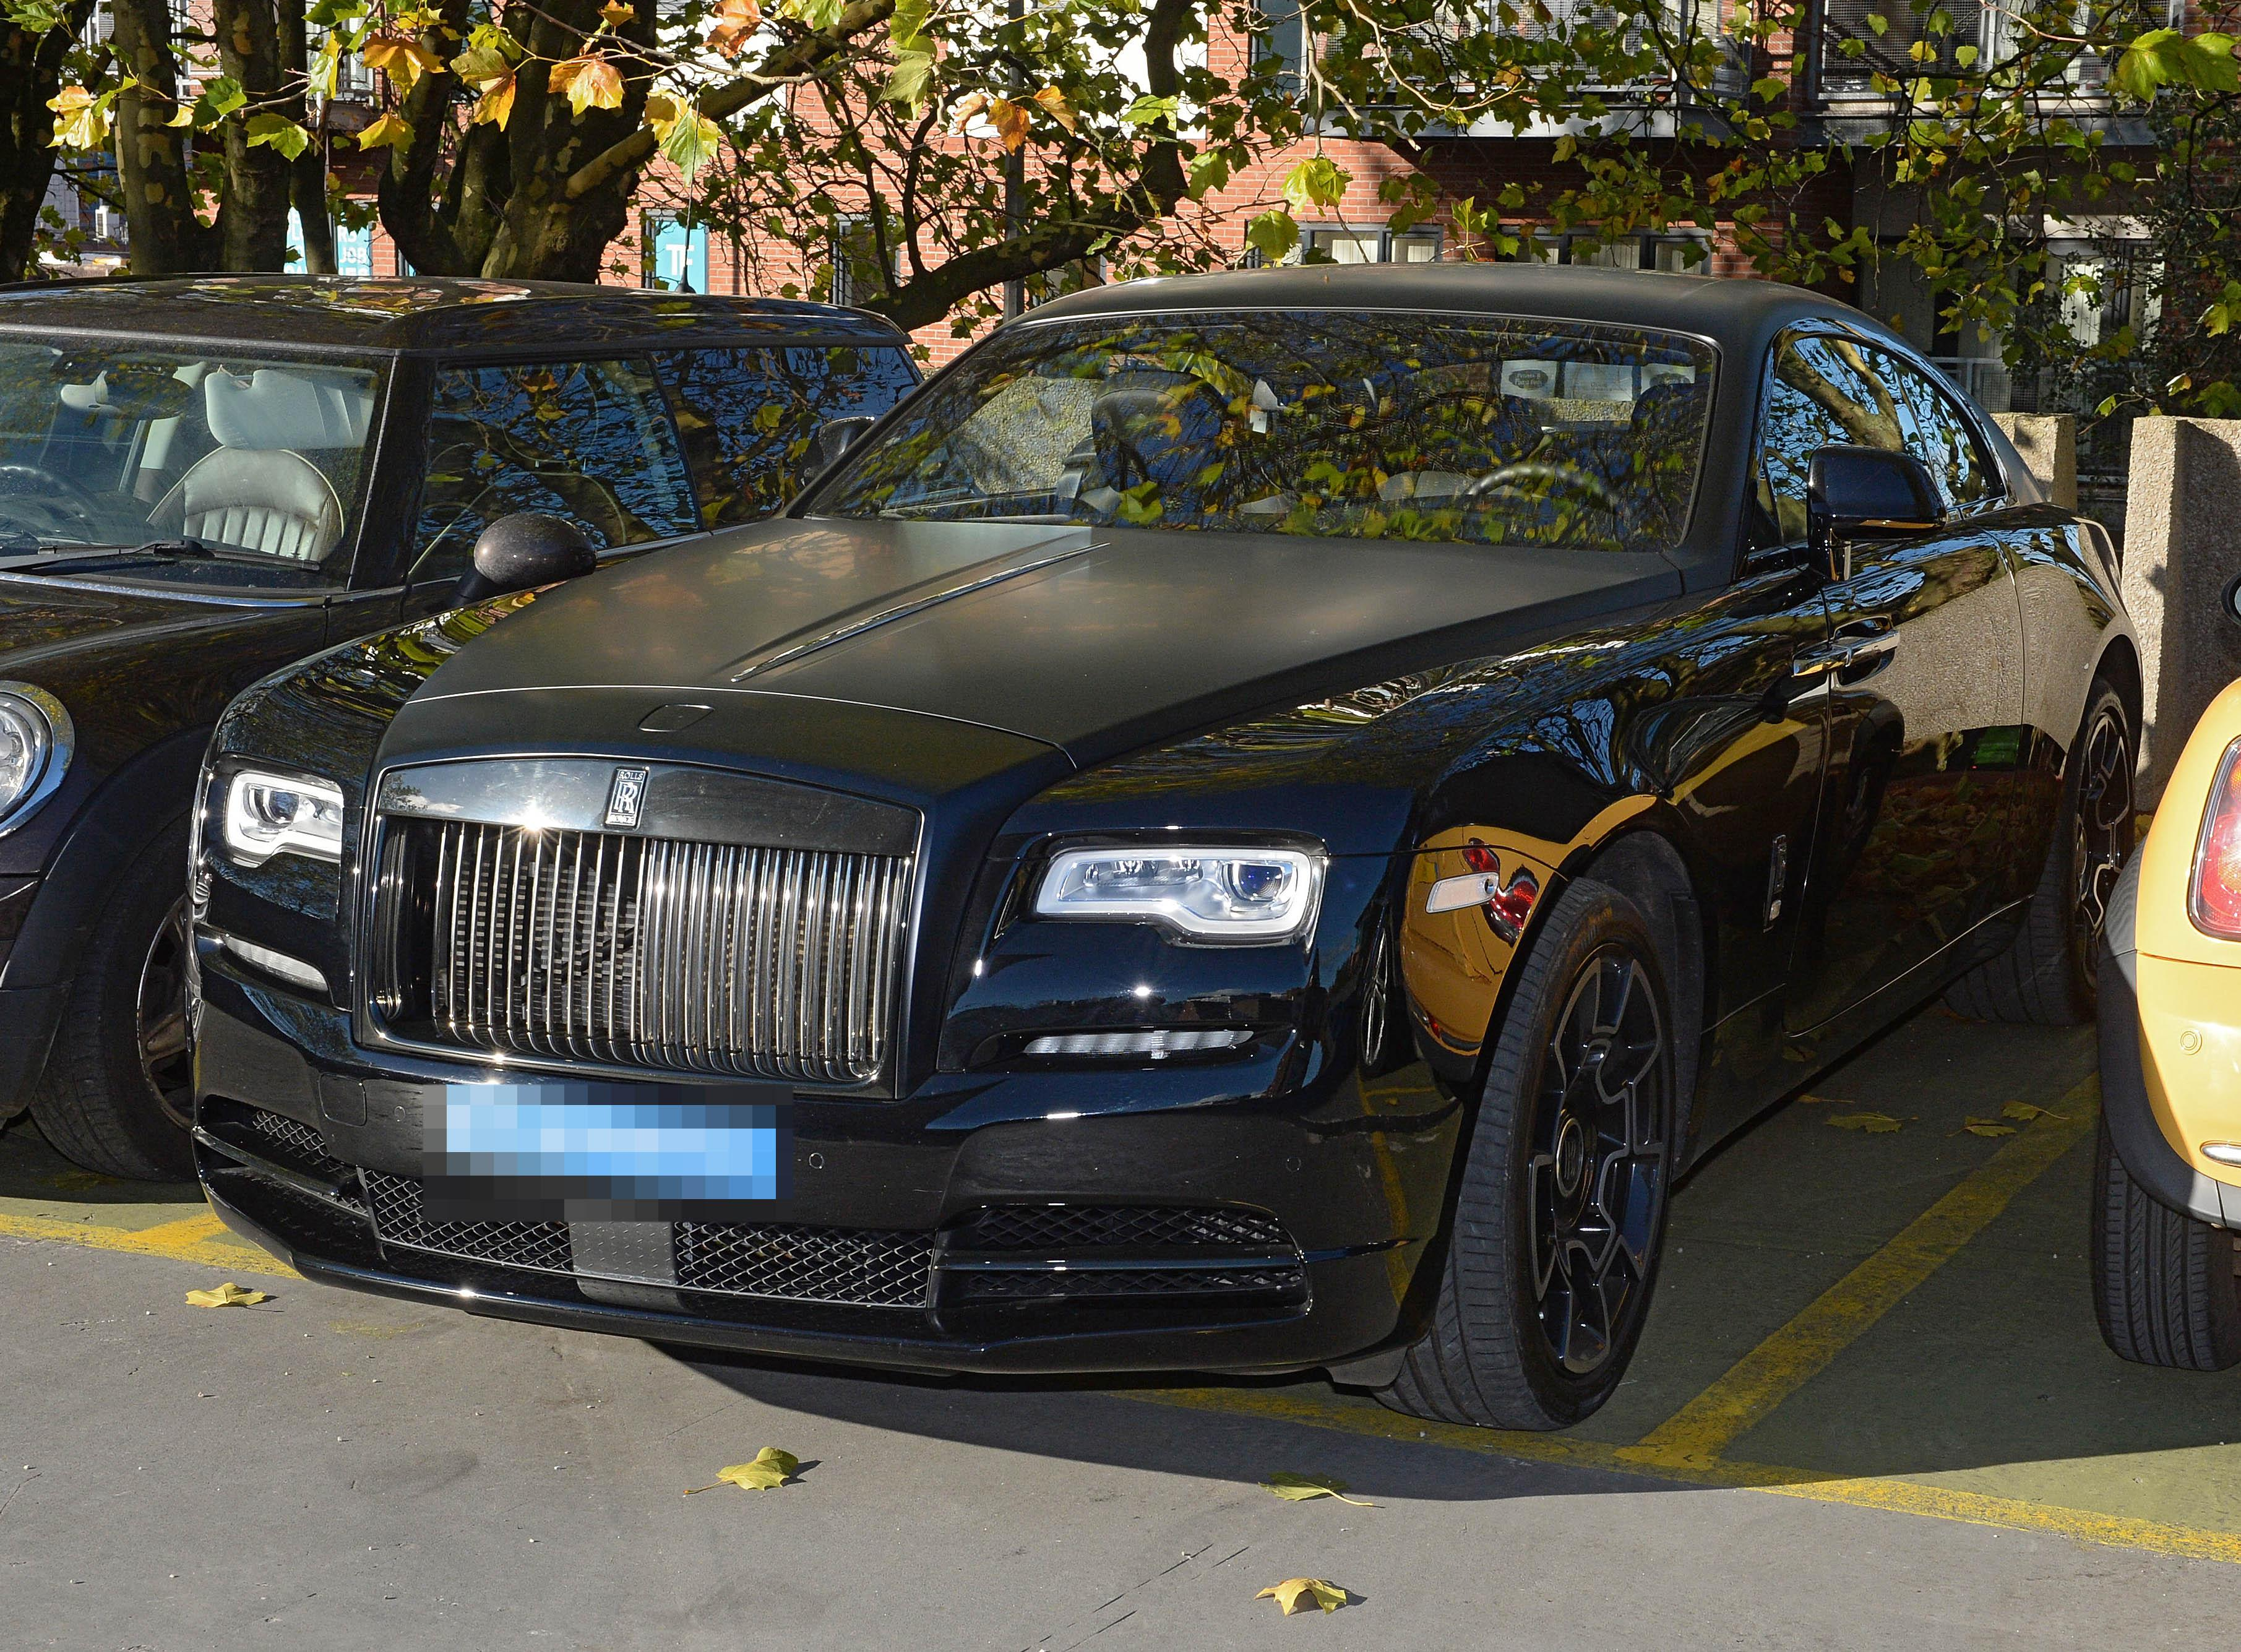 The France international arrived at court in a £300,000 Rolls-Royce